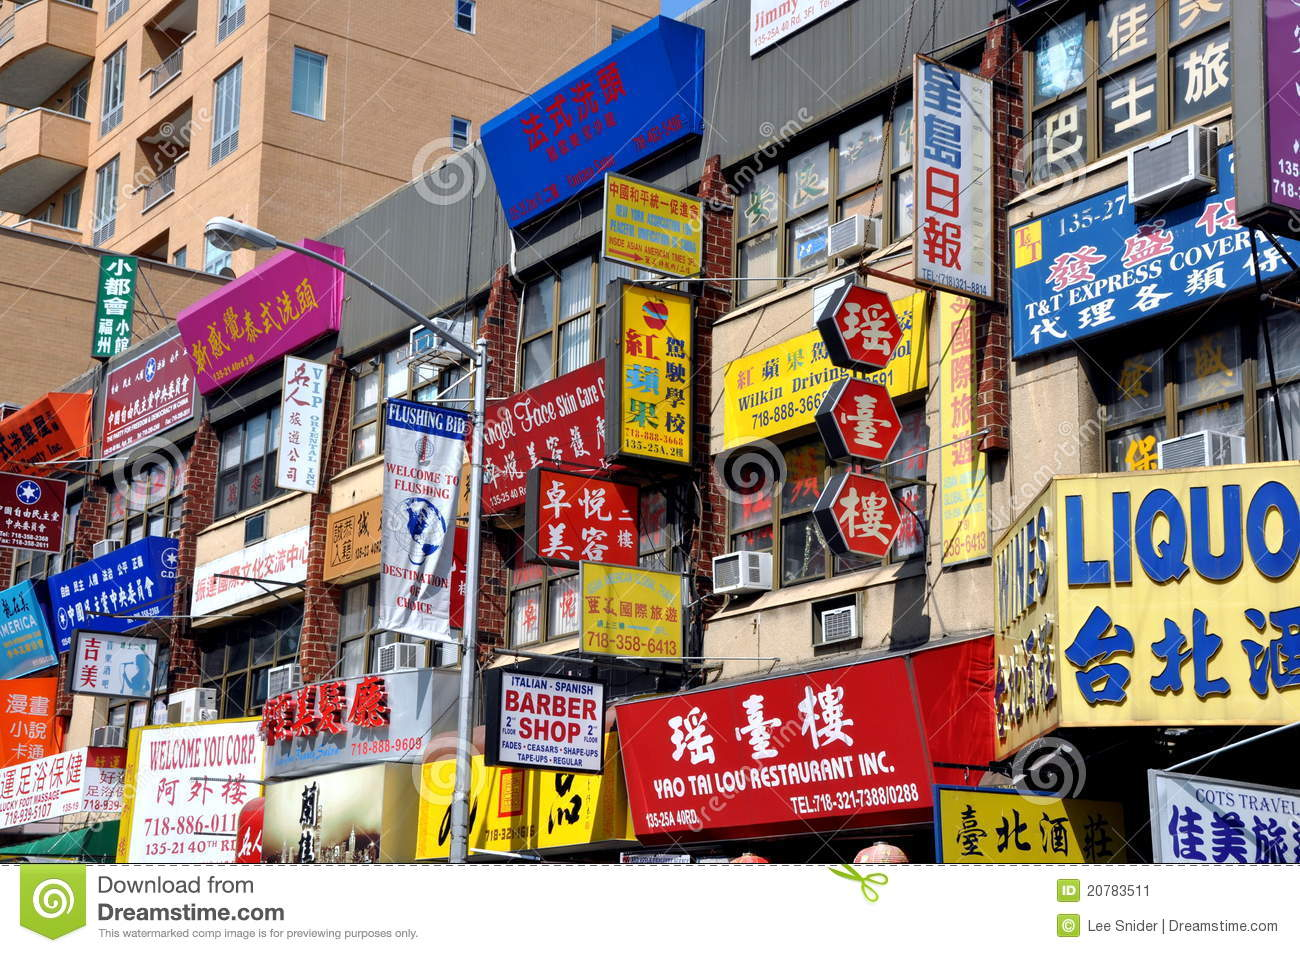 Chinese in flushing queens new york